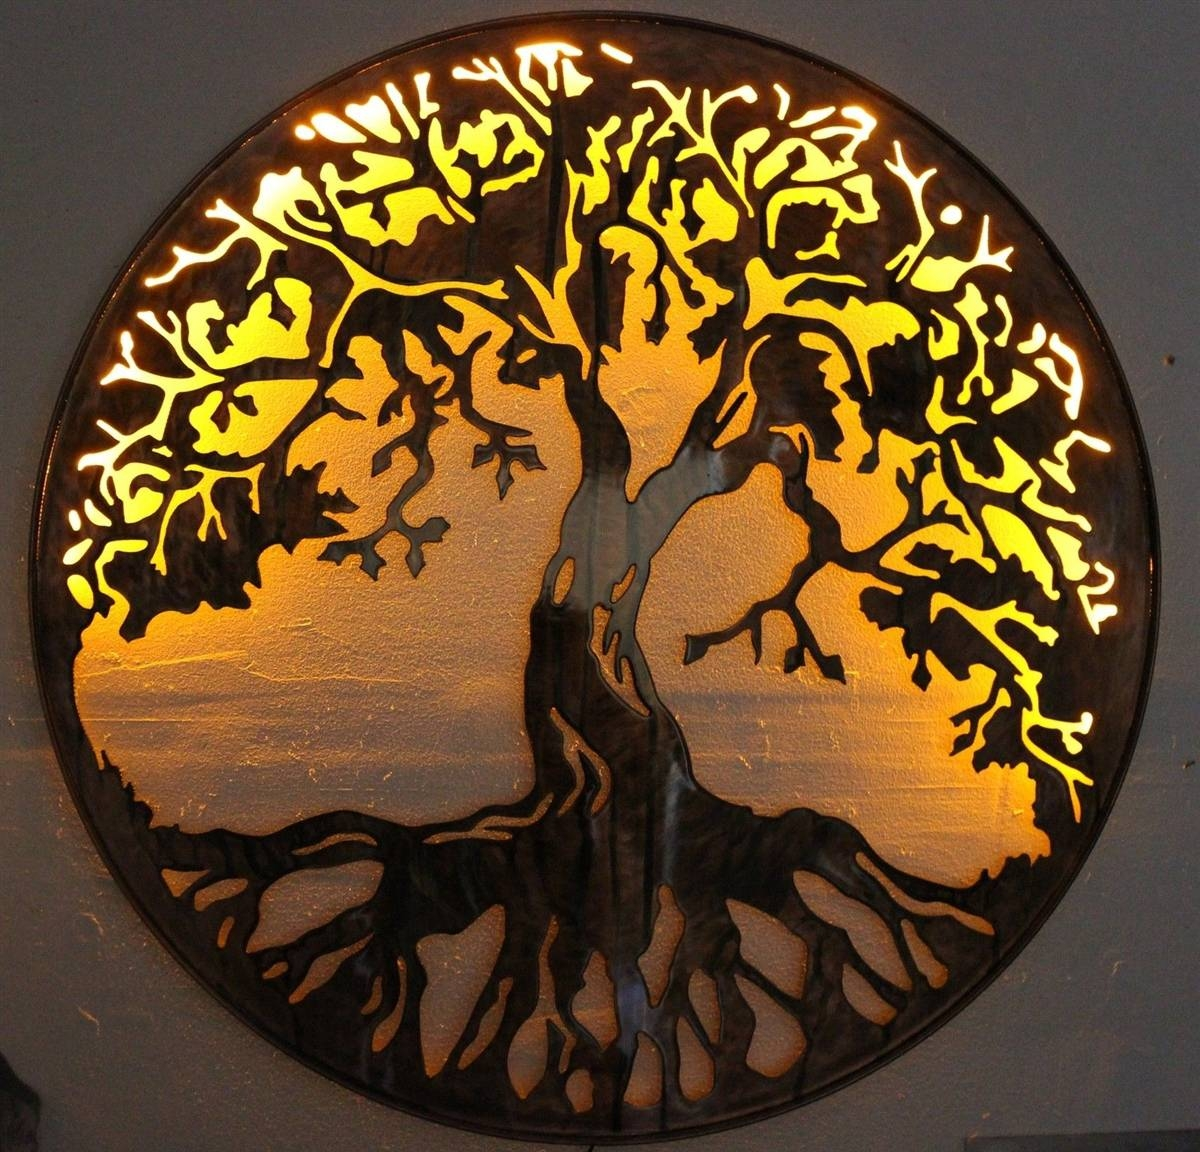 "Of Life Metal Wall Art 24"" With Led Lightshgmw With Regard To Recent Tree Of Life Metal Wall Art (Gallery 3 of 20)"